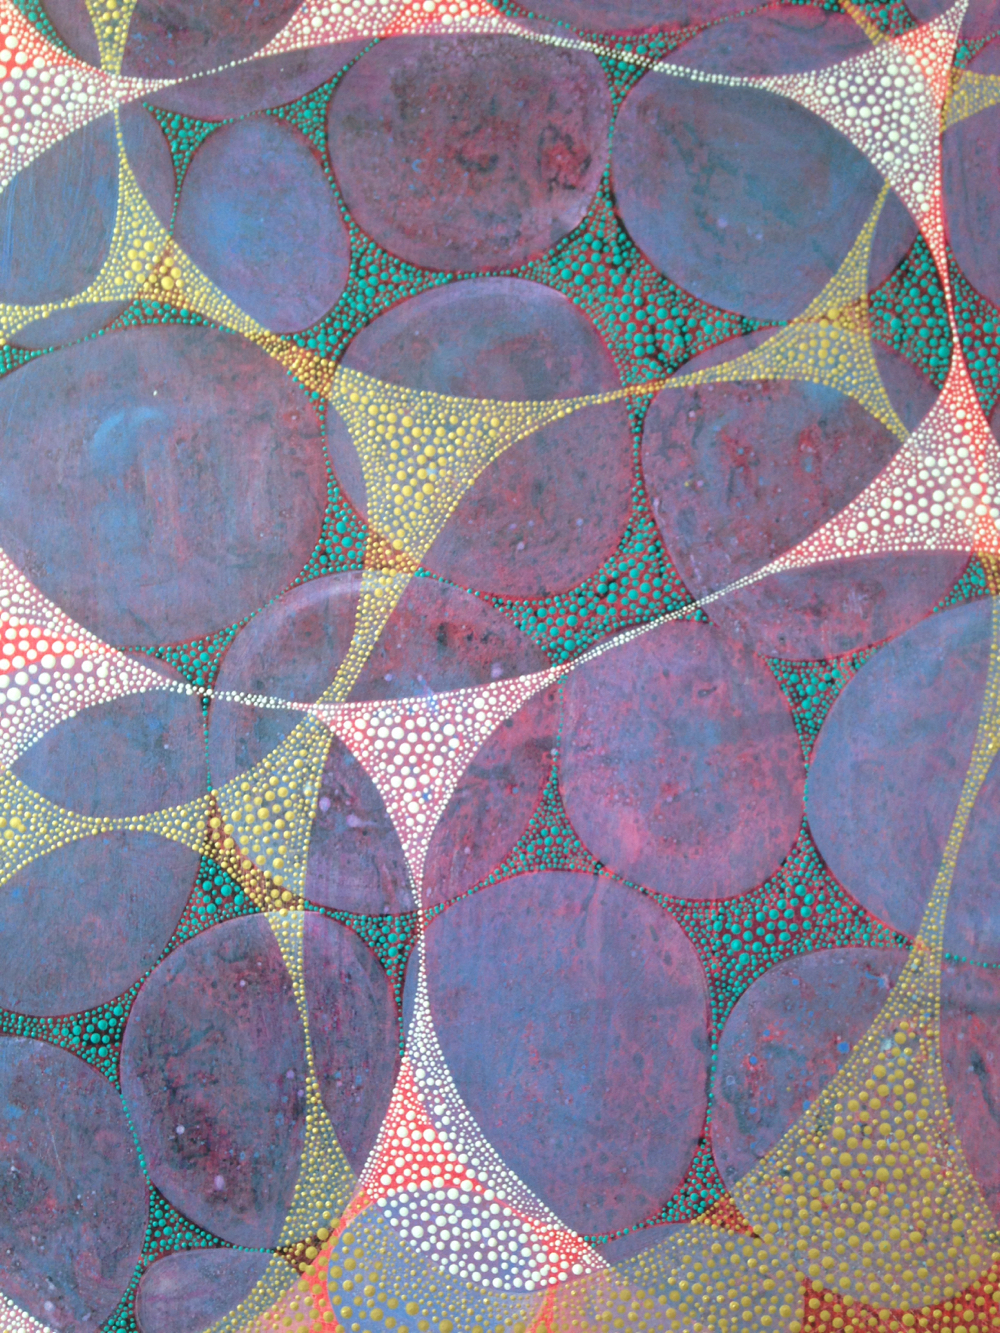 Inner Garden 29 work-in-progress: Final dot layer